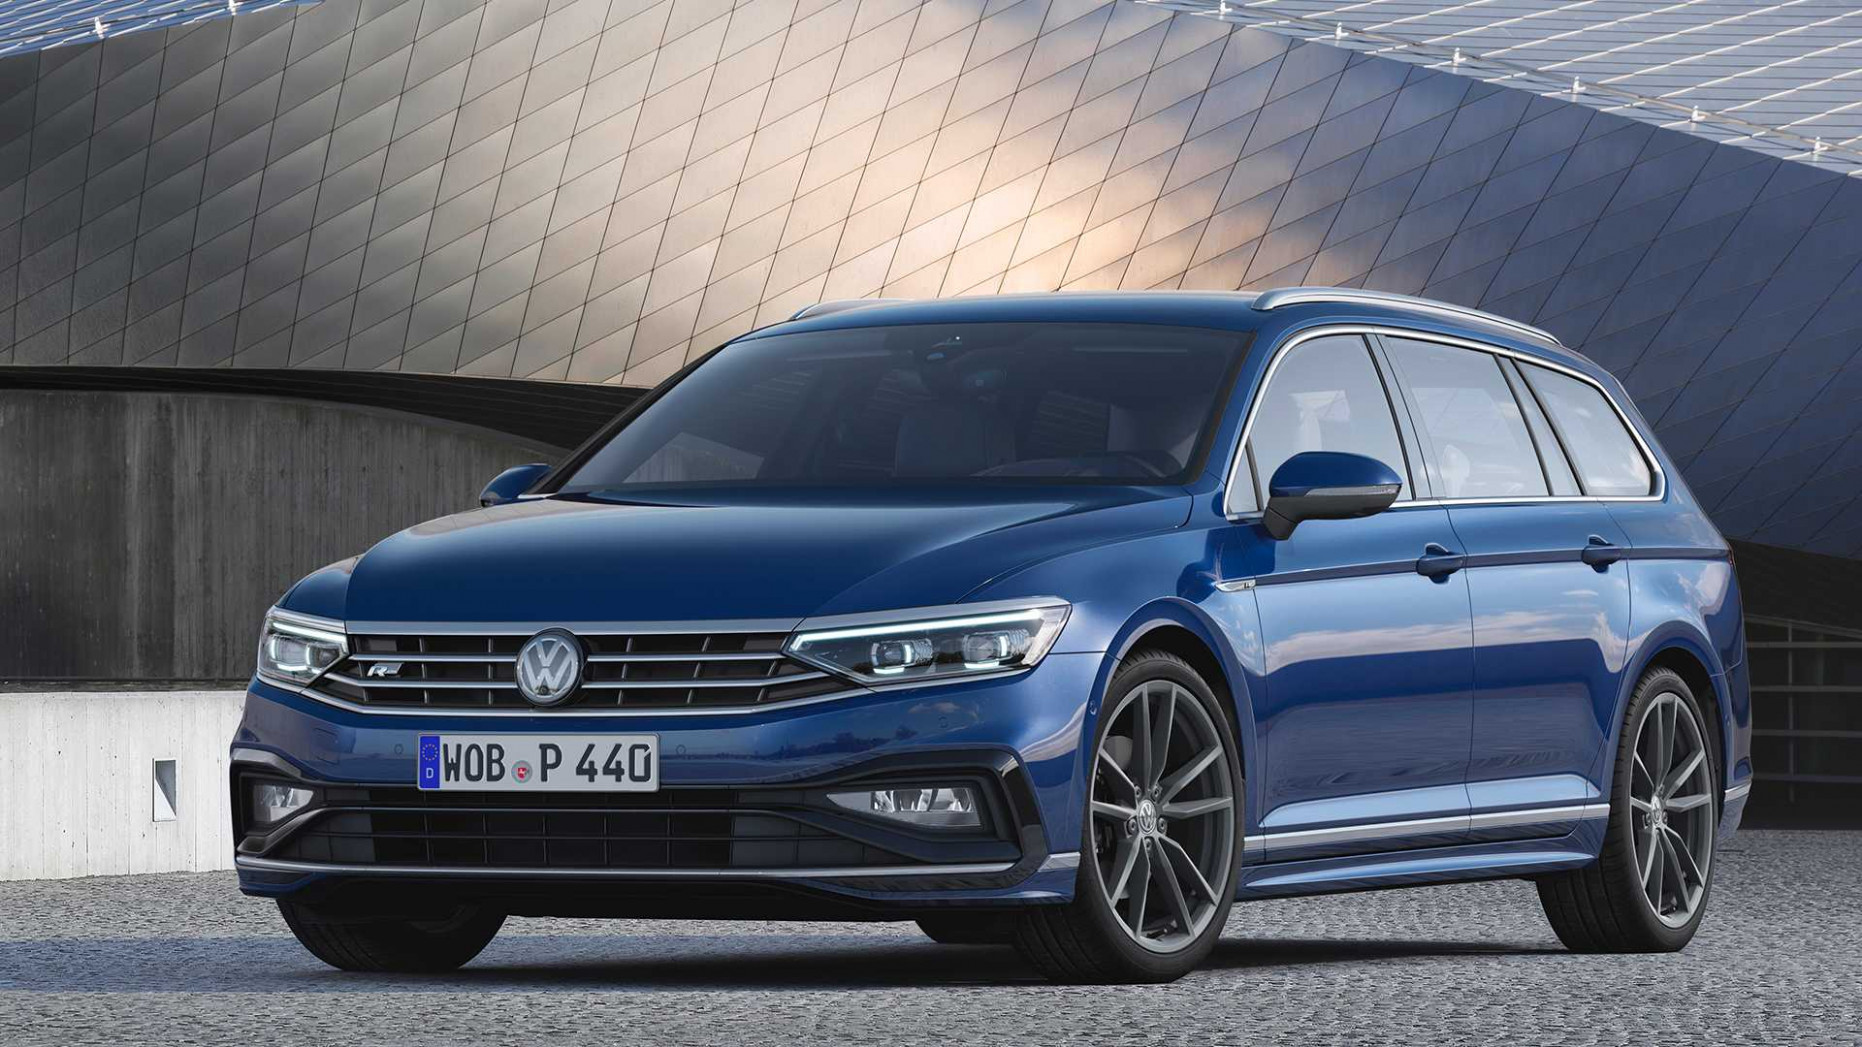 Exterior and Interior Next Generation Vw Cc